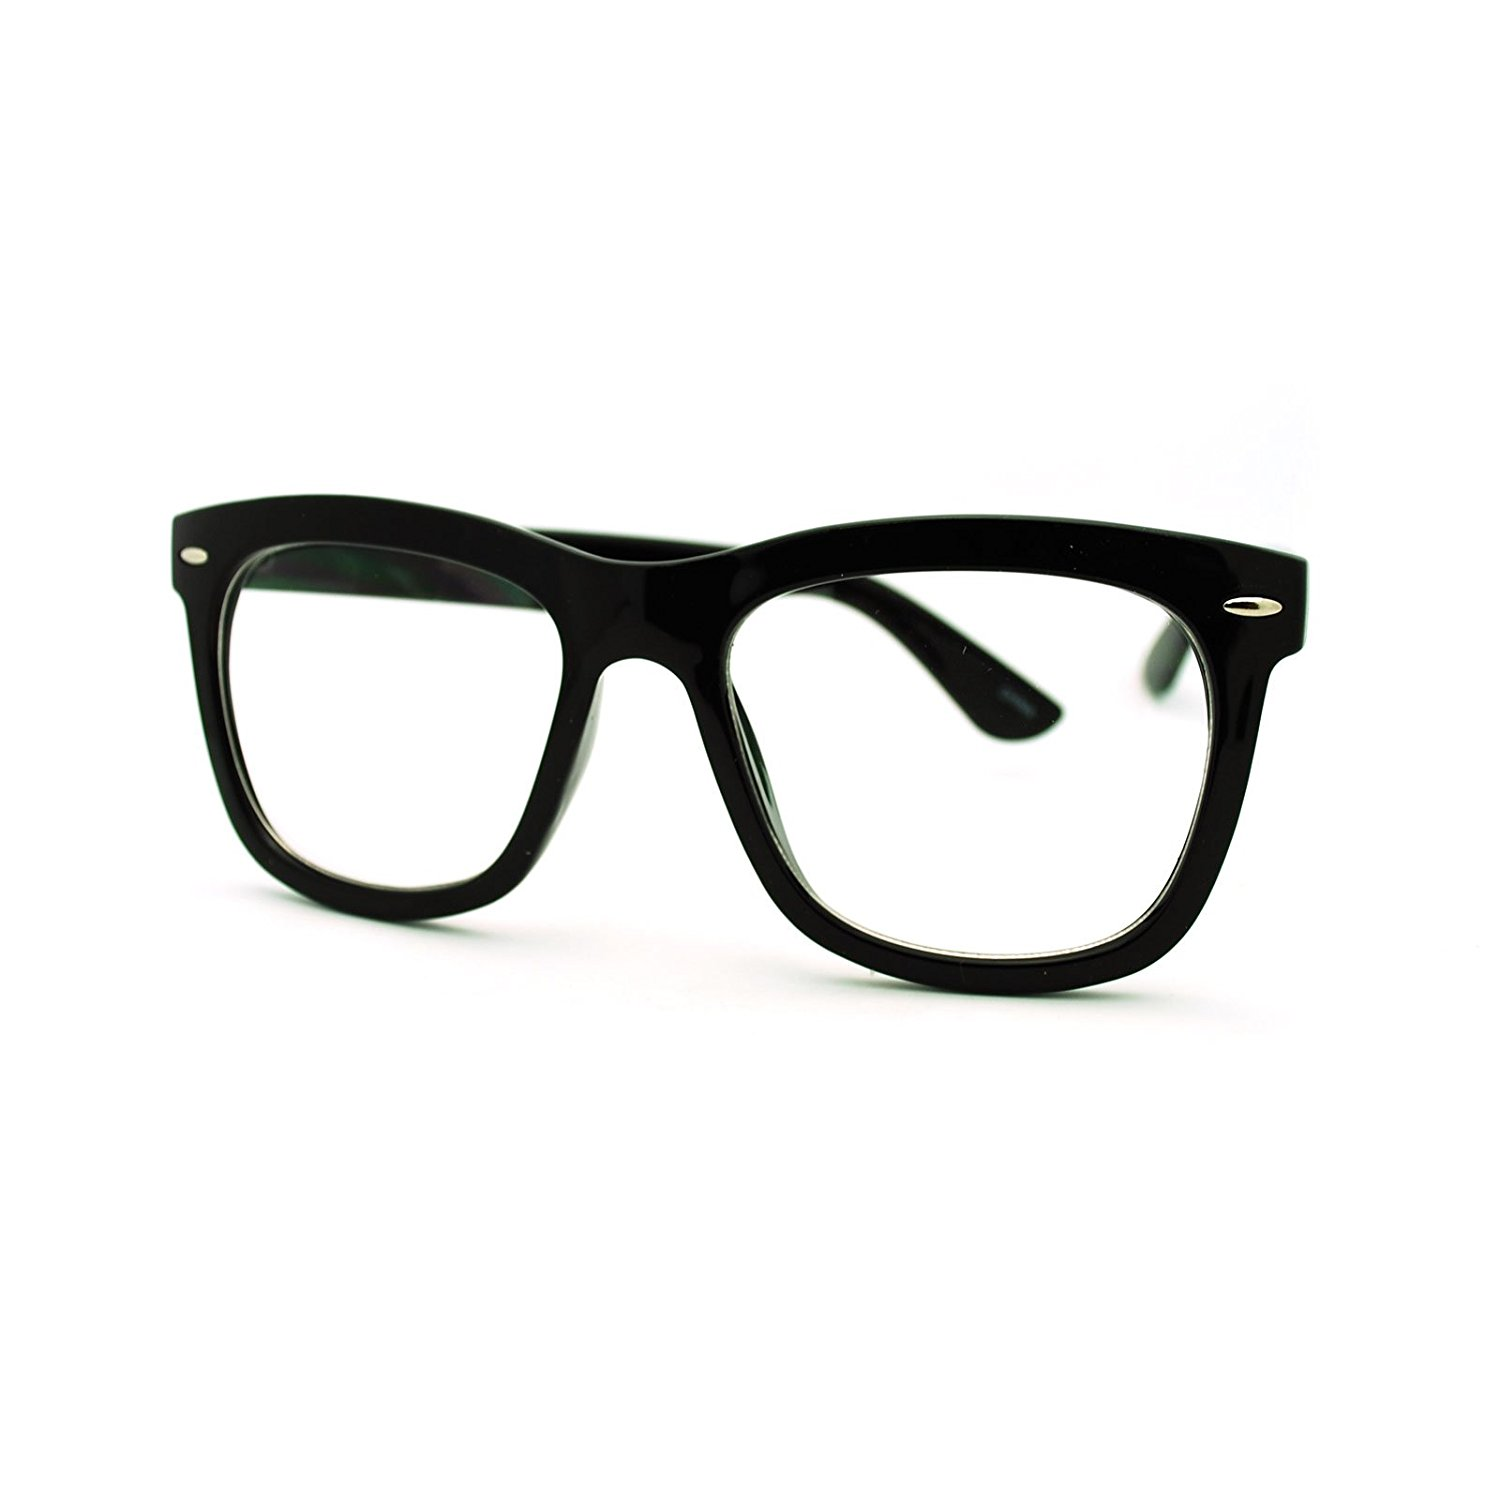 5762591780a Get Quotations · Clear Lens Eyeglasses Oversized Thick Square Frame Nerdy  Glasses